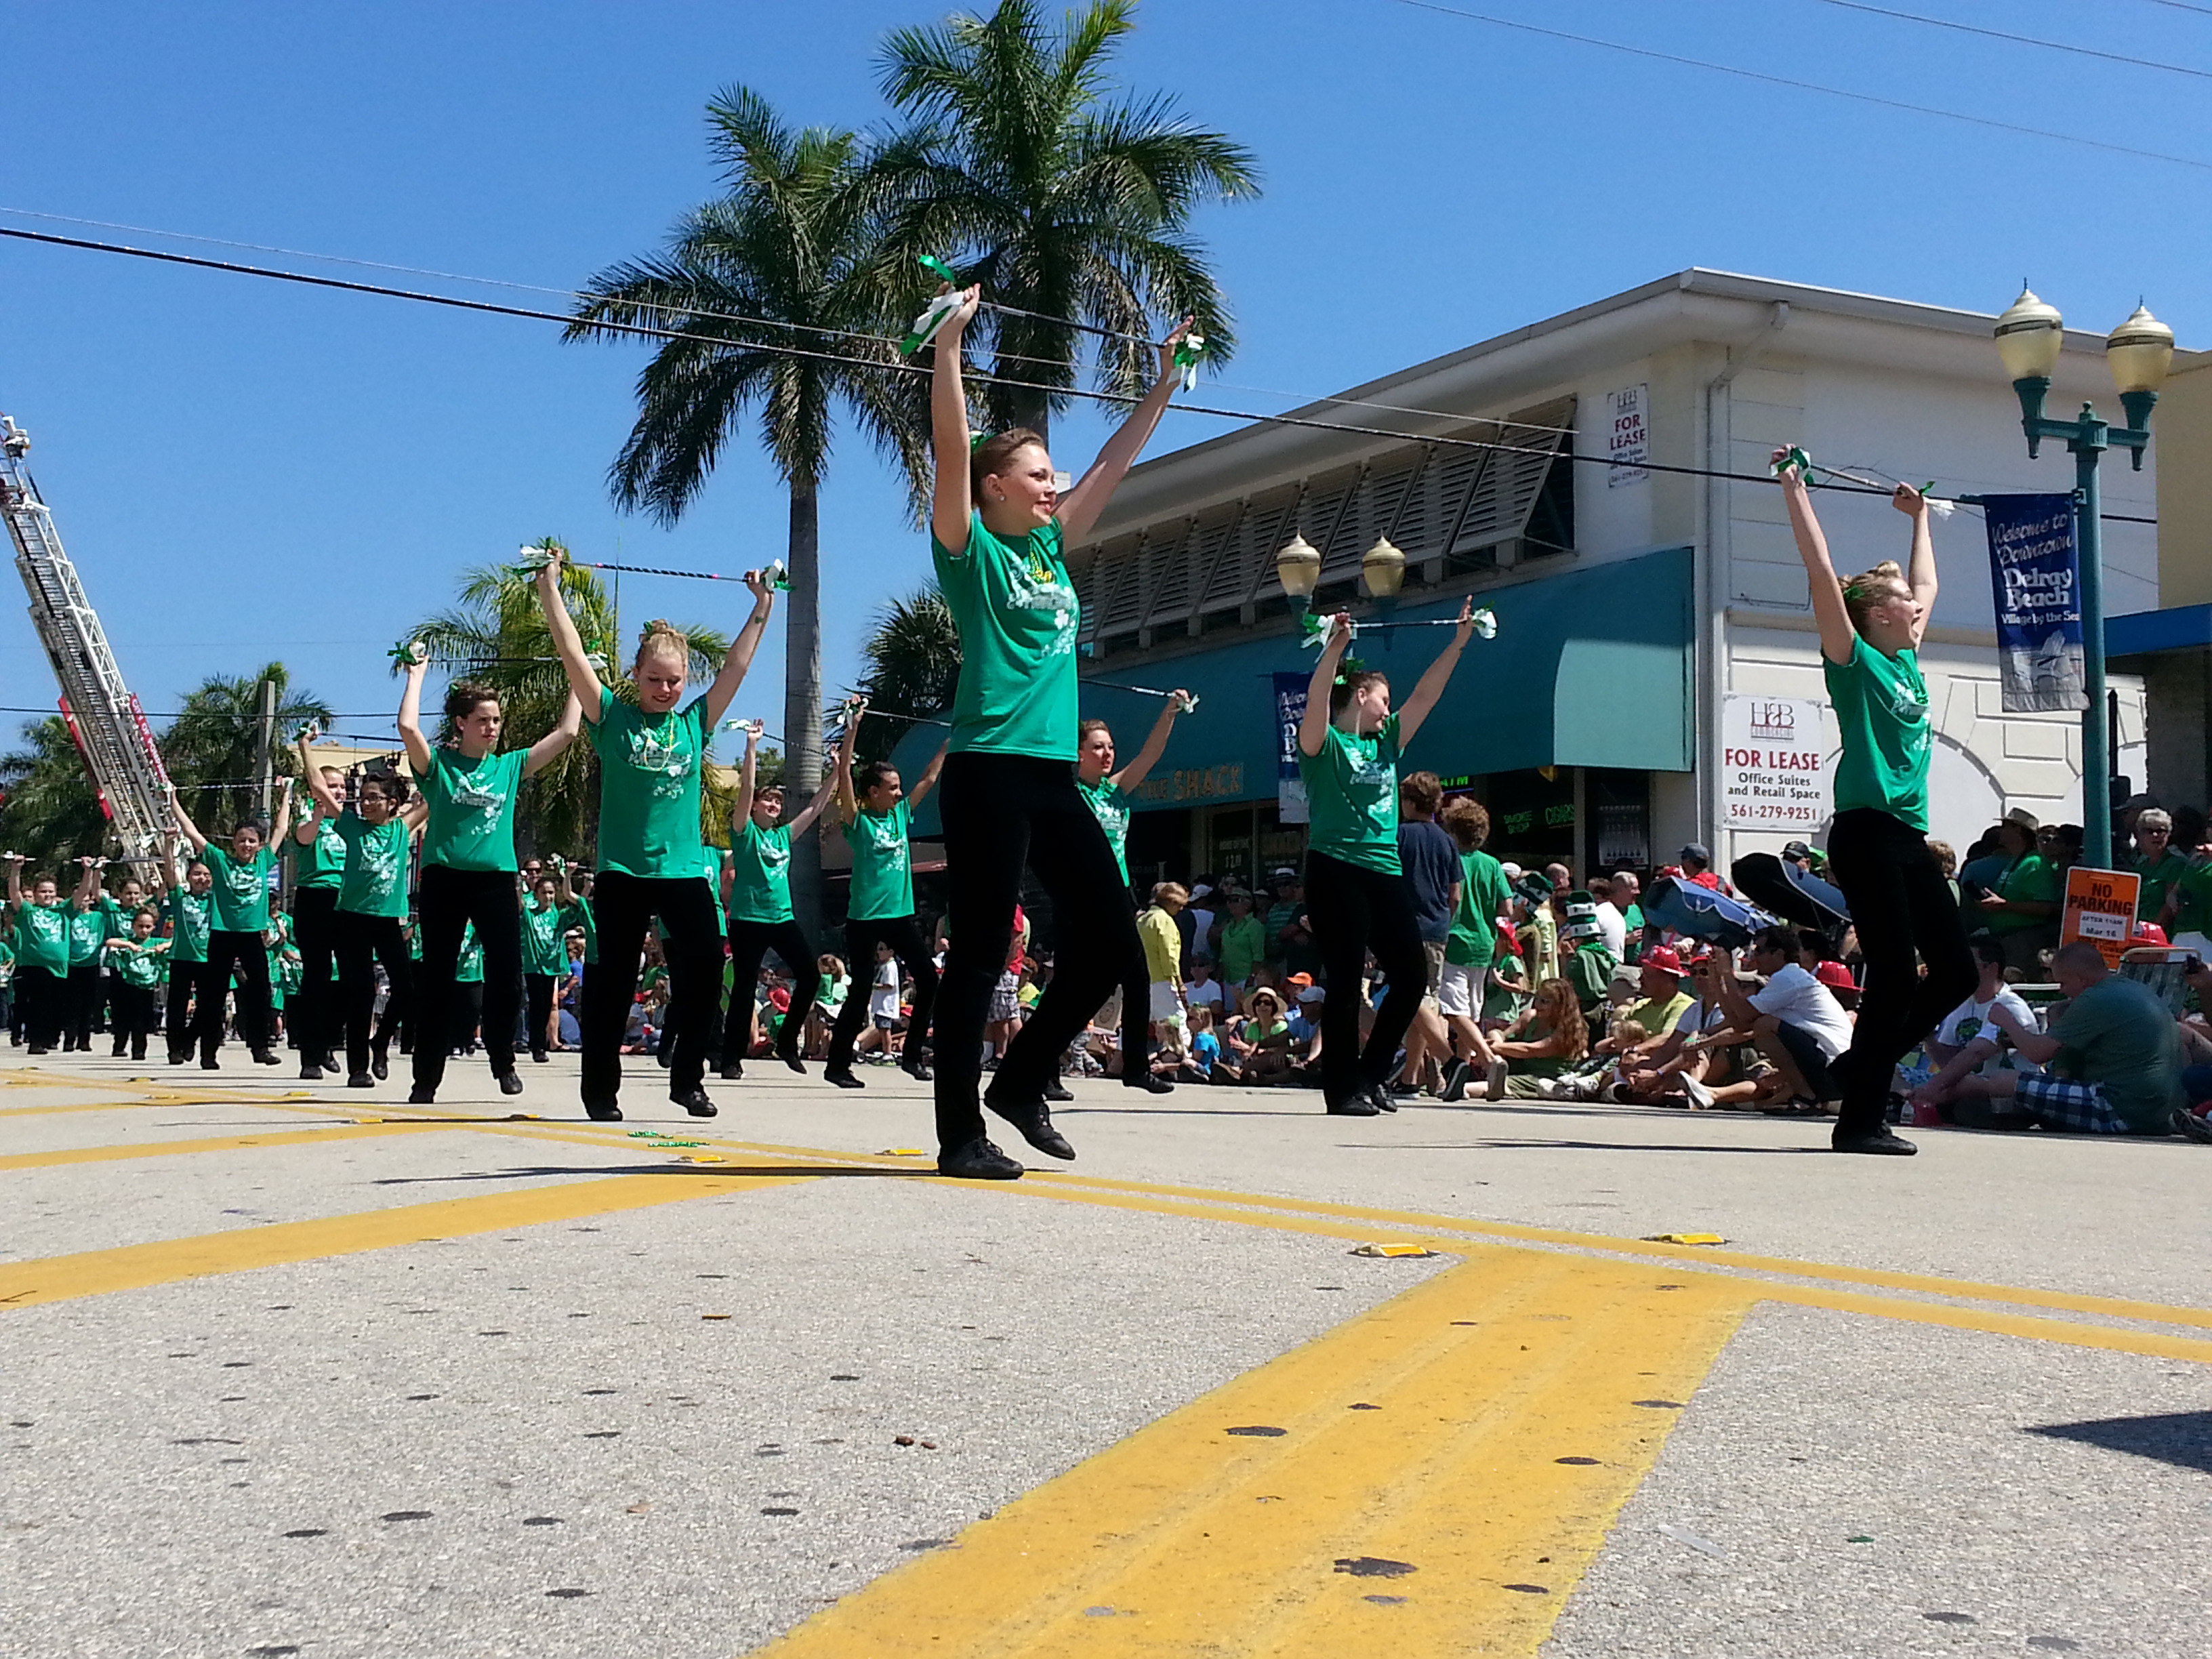 Delray Beach Annual St. Patrick's Day